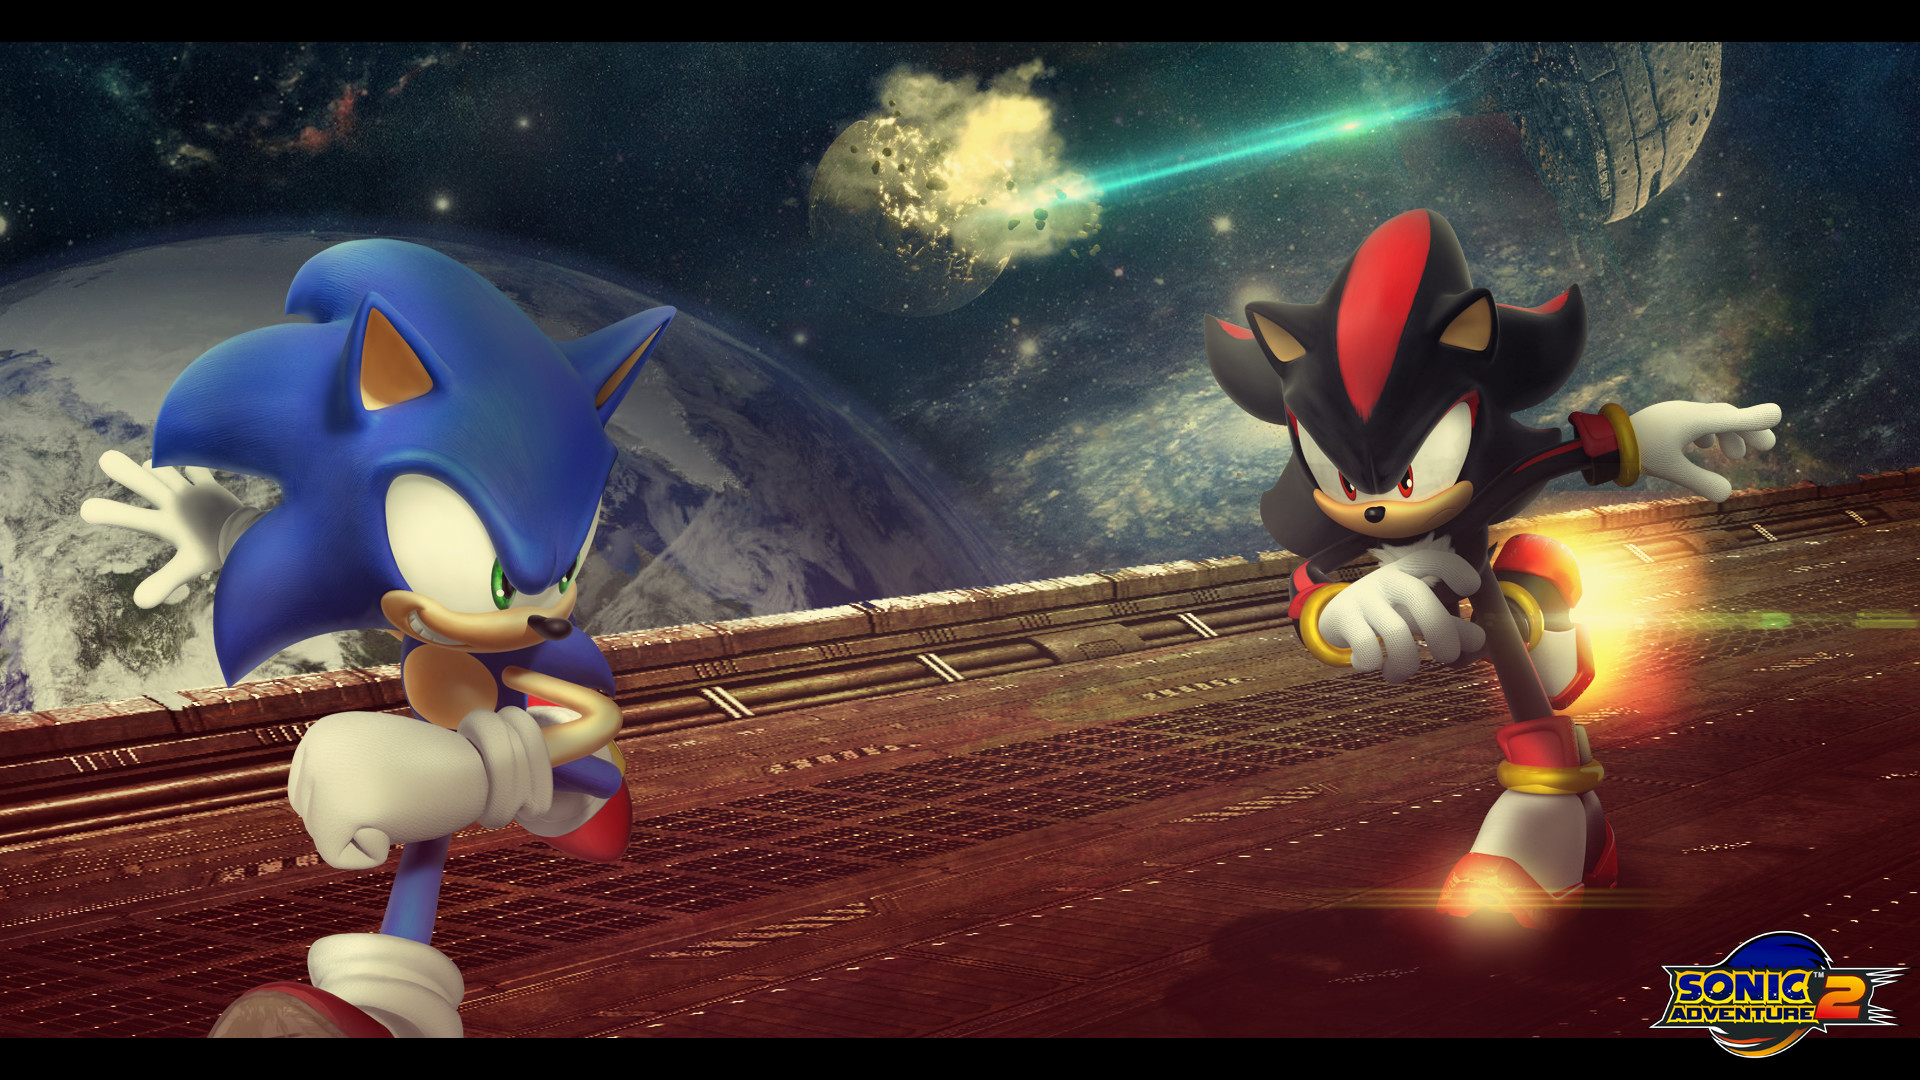 2000x1230 HQ Sonic Adventure 2 Wallpapers